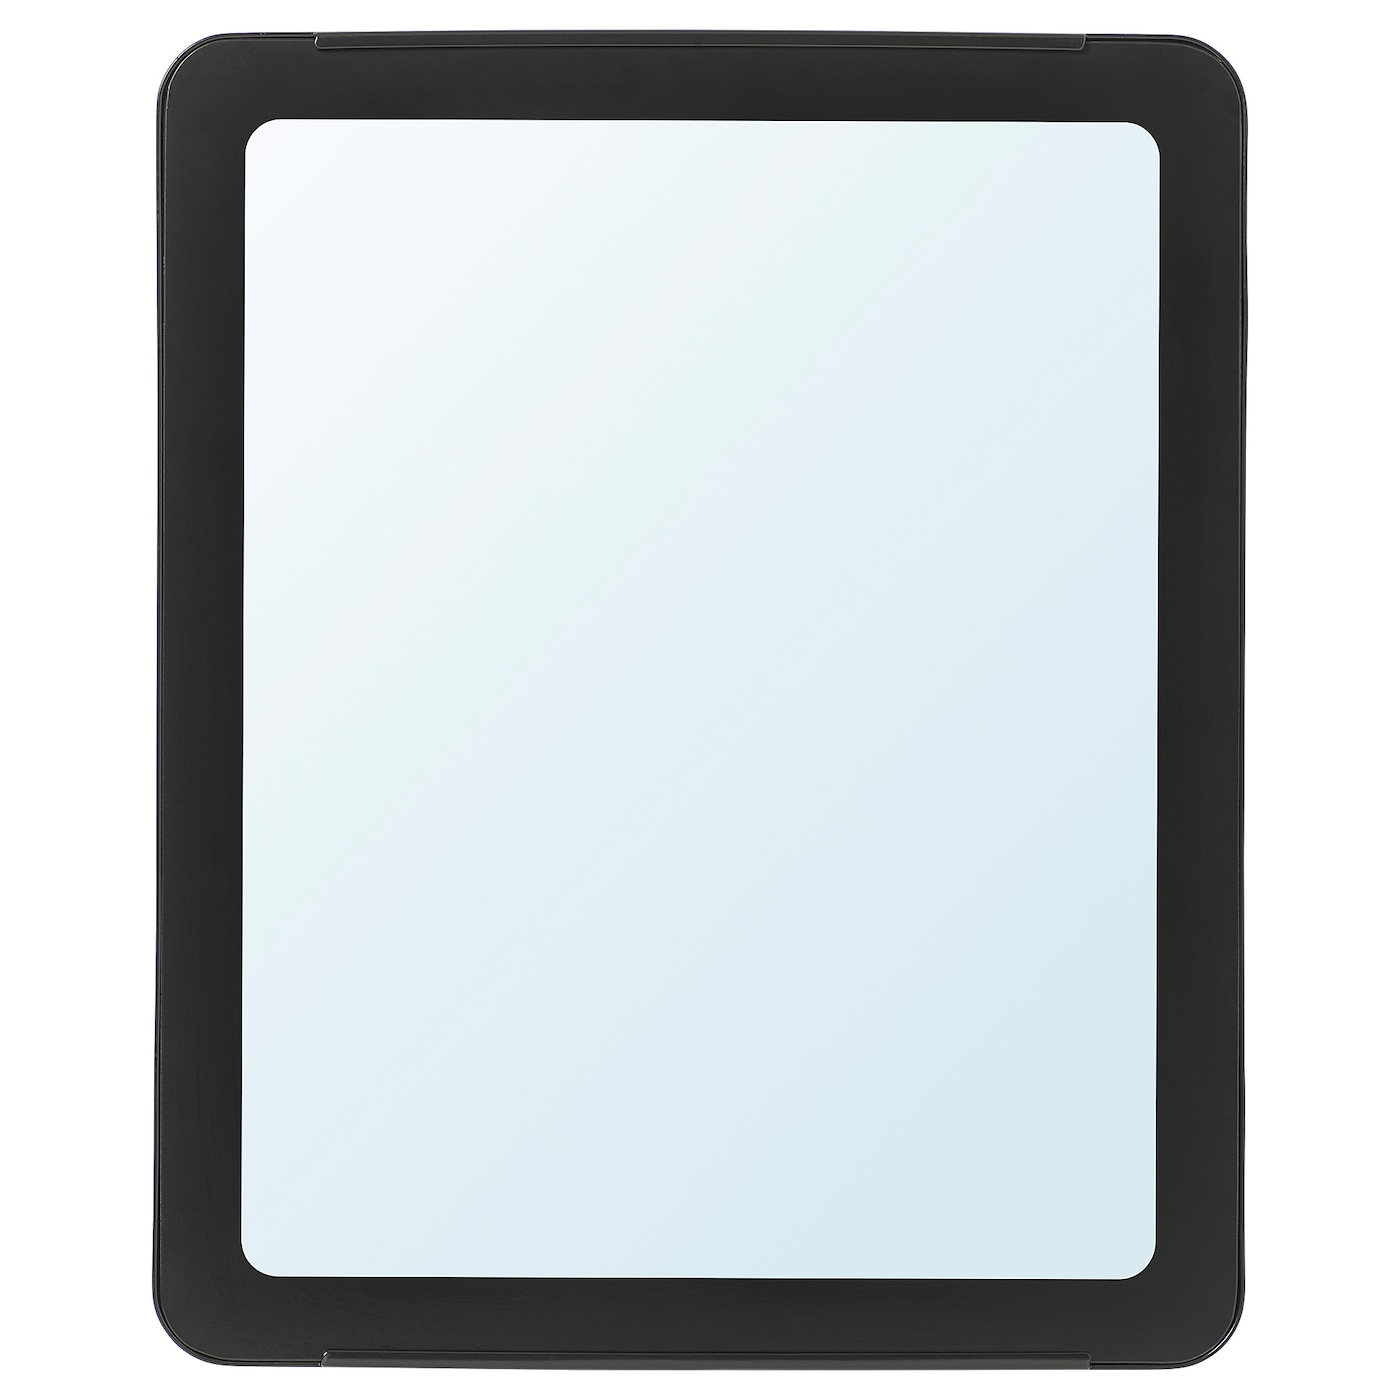 IKEA GRUA mirror Suitable for use in most rooms, and tested and approved for bathroom use.